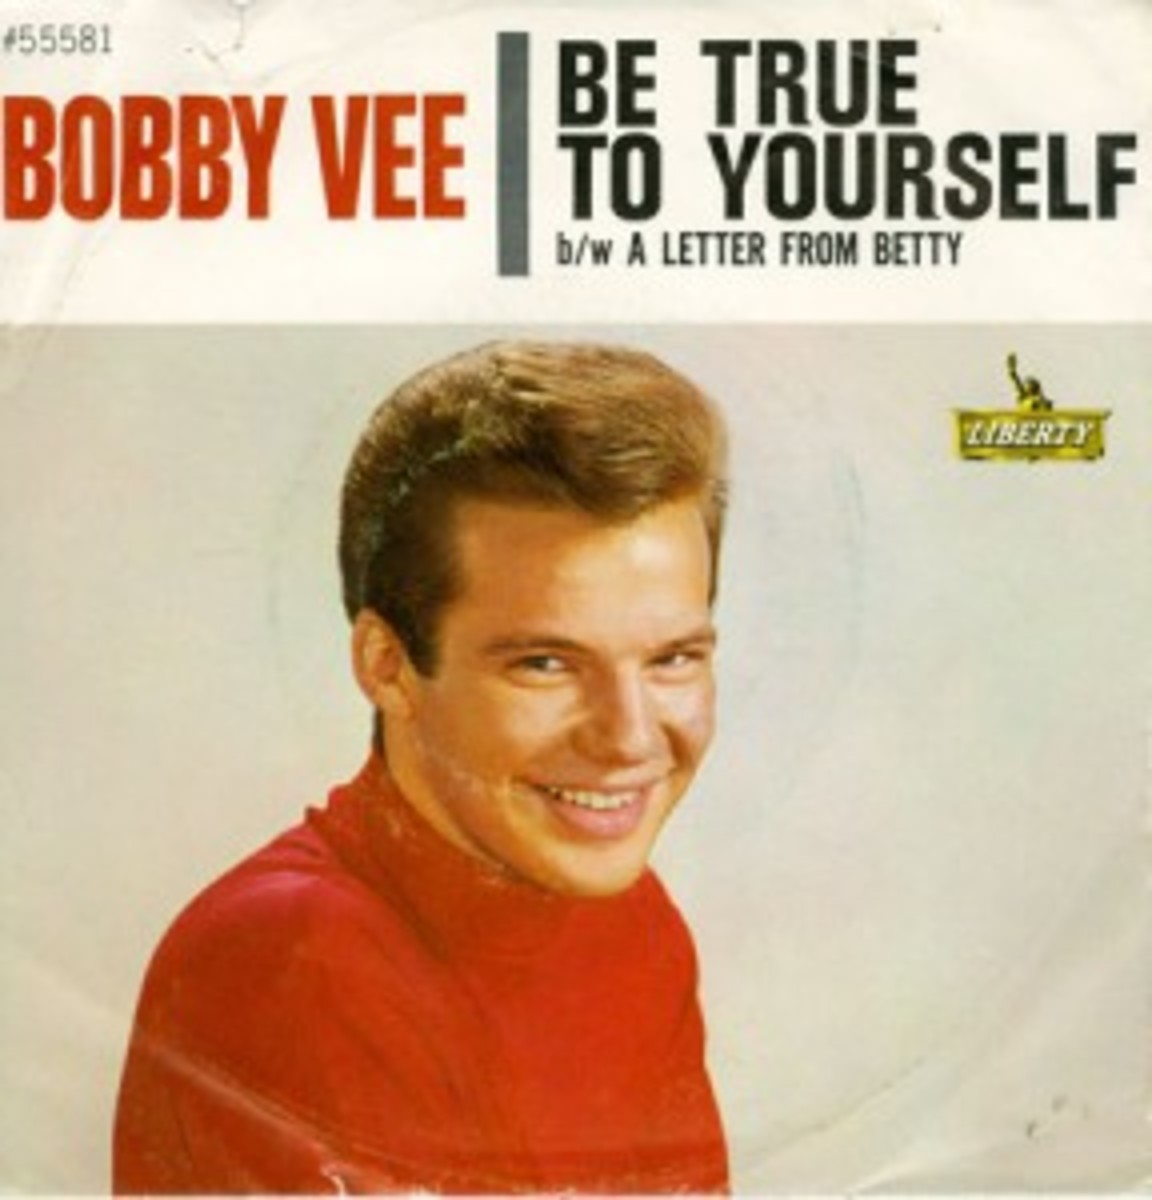 Bobbee Vee Be True To Yourself picture sleeve